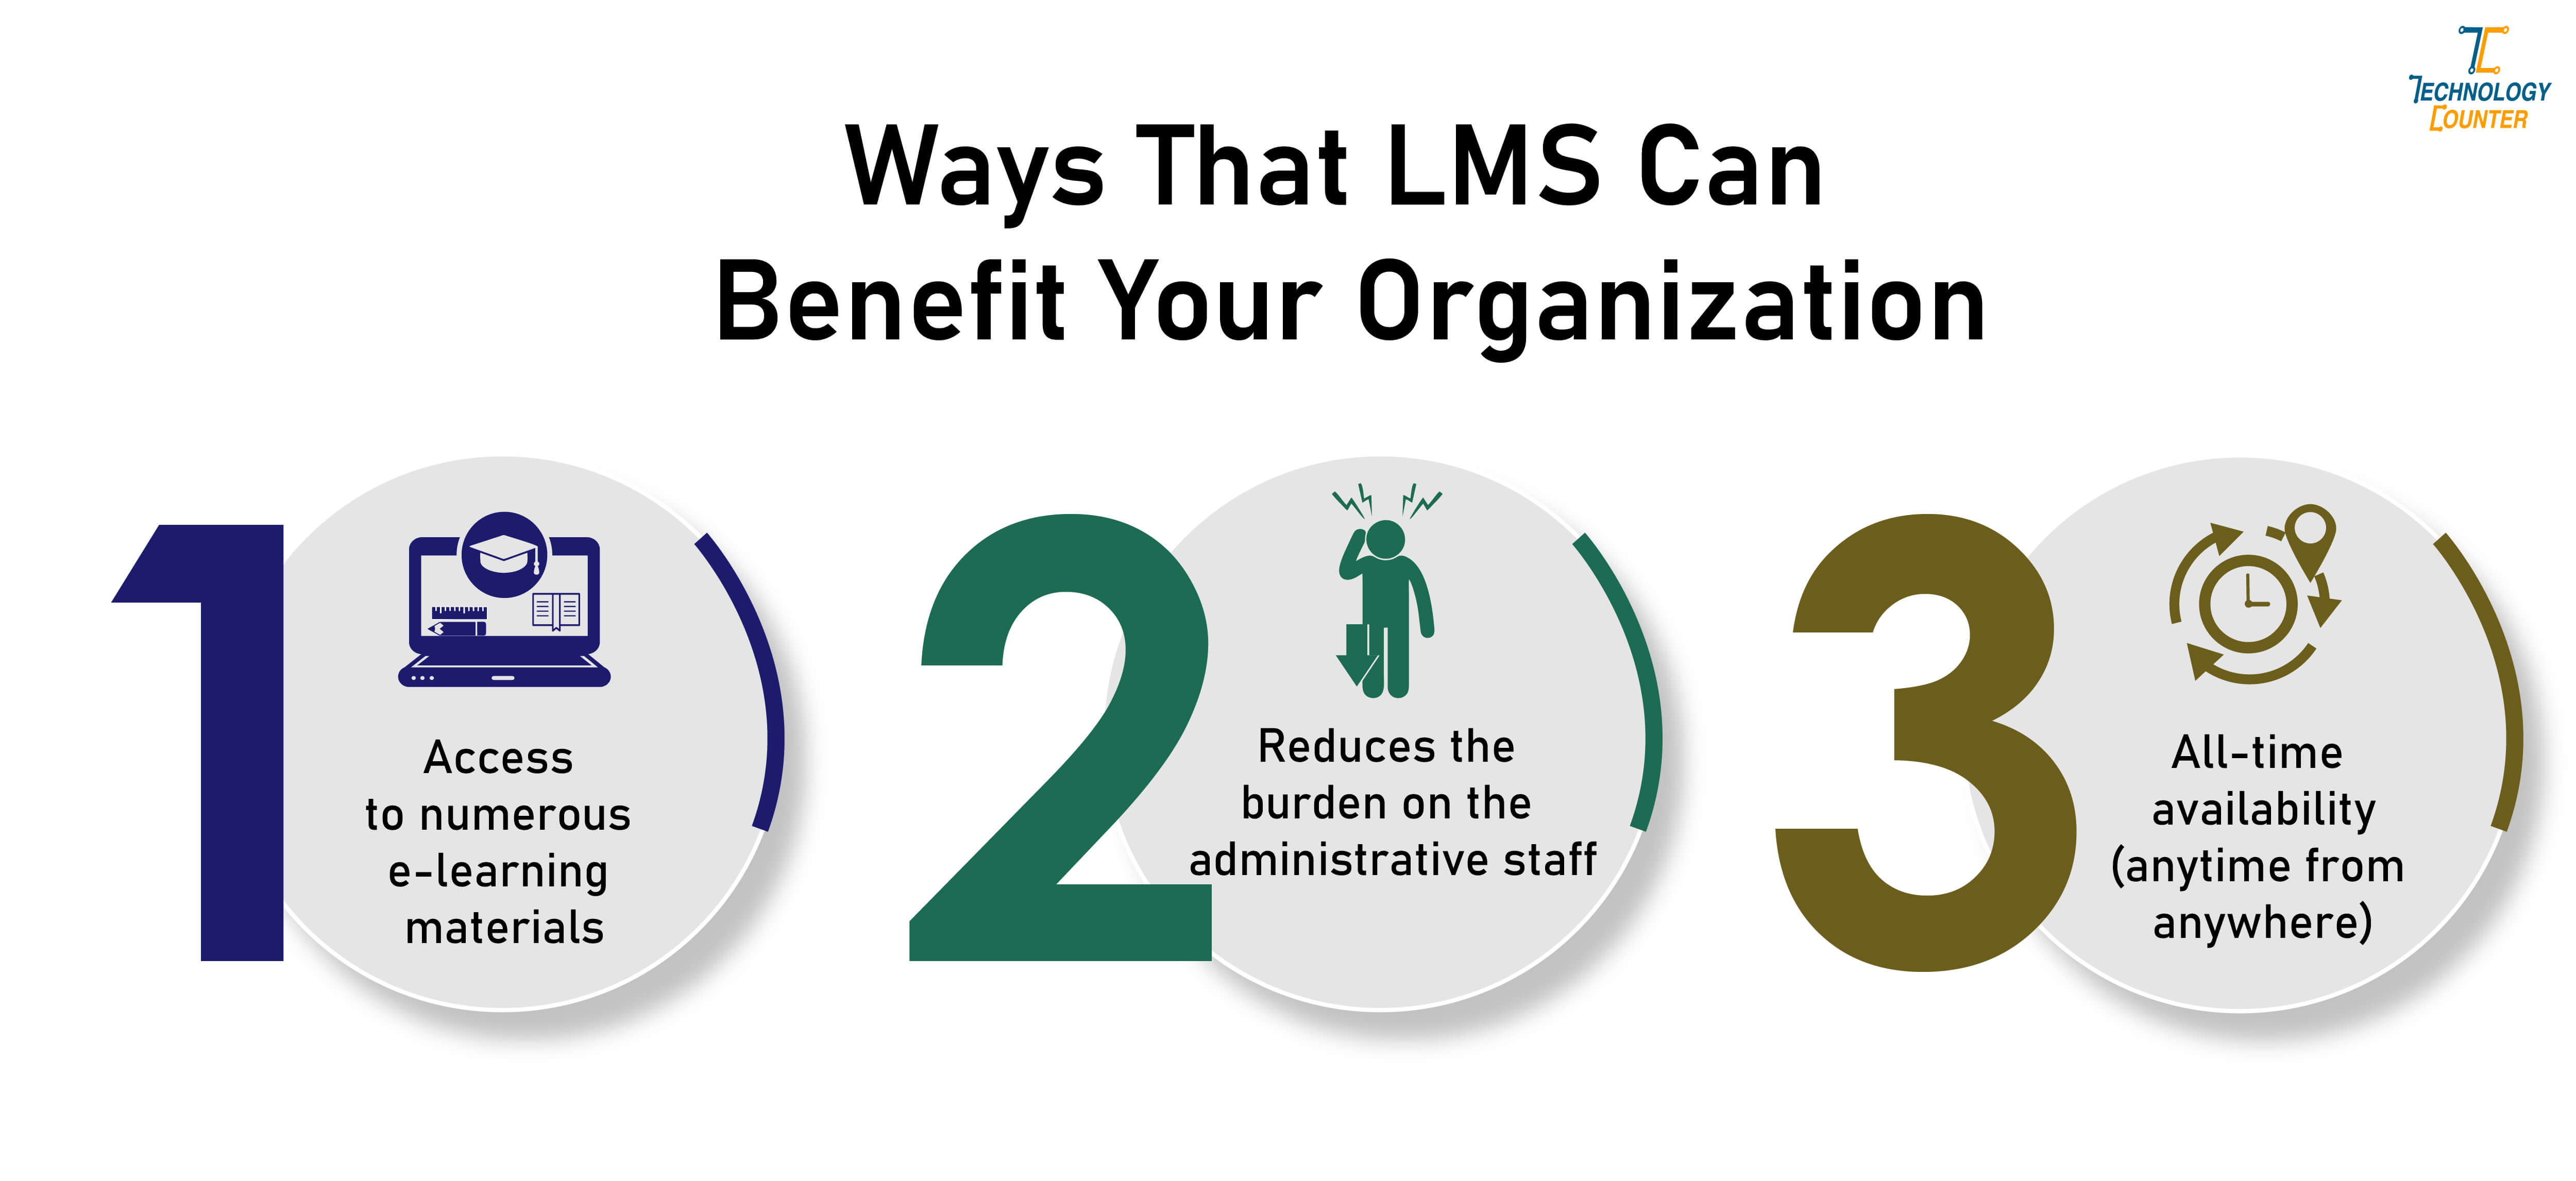 Ways that LMS can benefit your organization